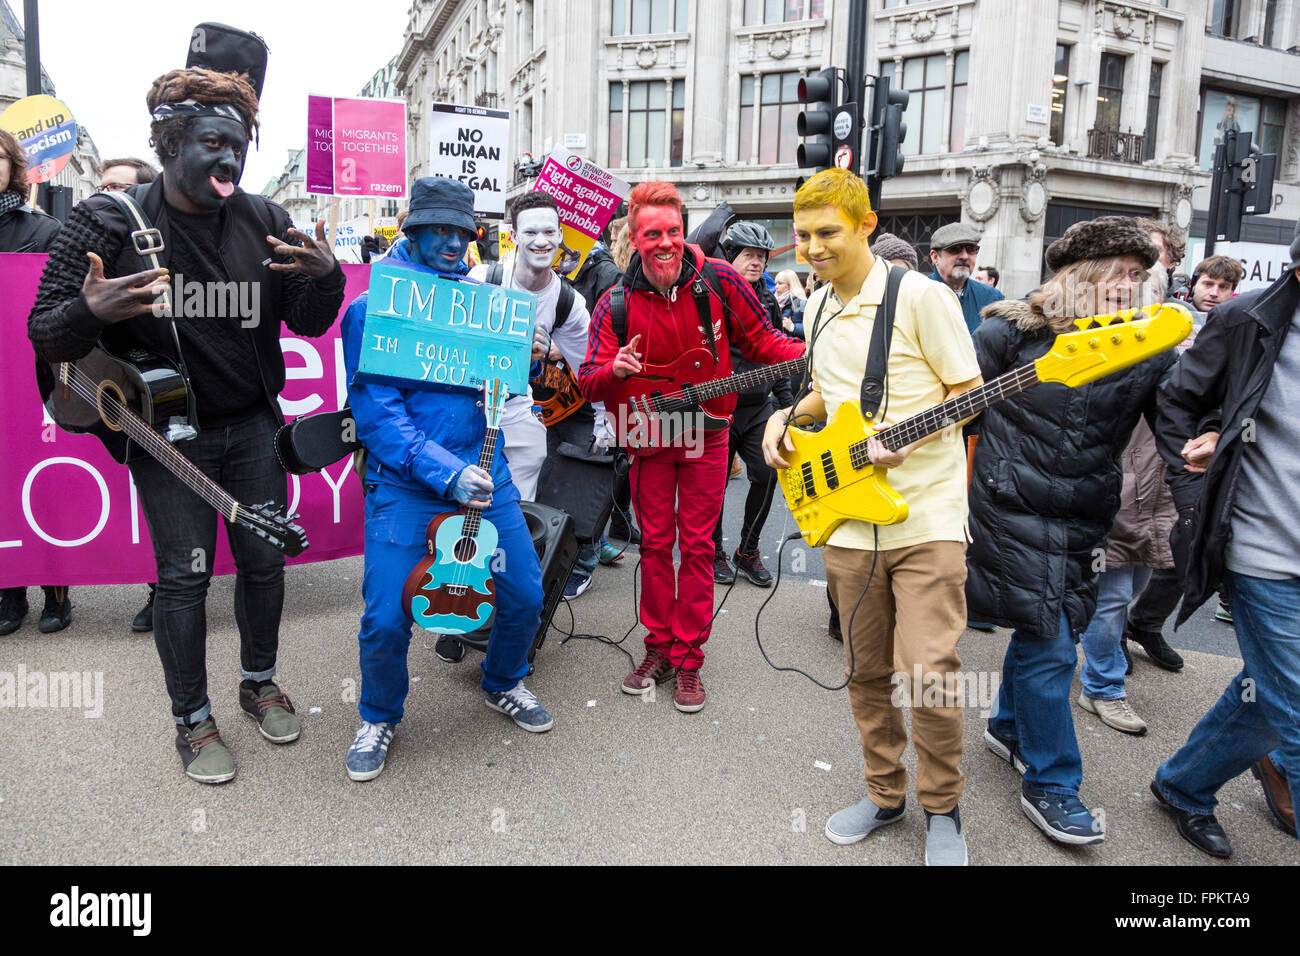 London, UK. 19 March 2016. Members of the band Bud Sugar in Oxford Circus. Thousands of protesters took to the street - Stock Image